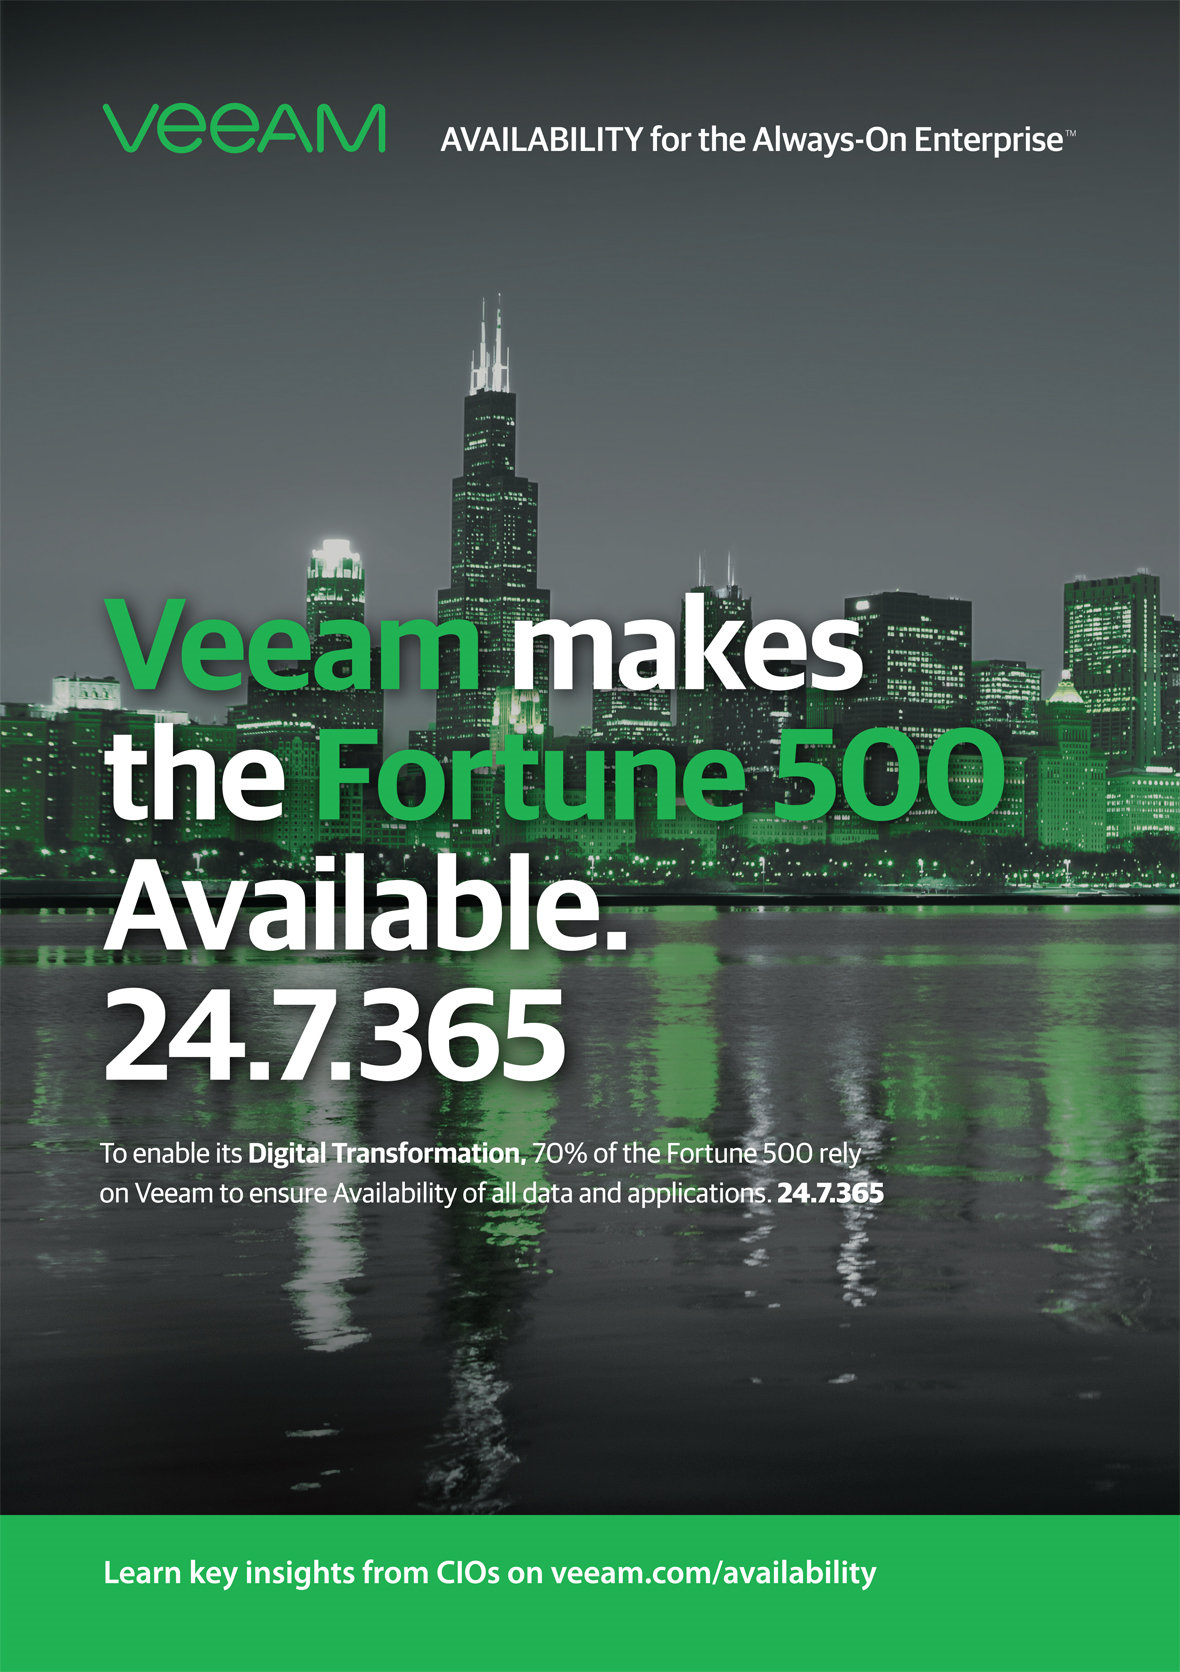 VEEAM SOFTWARE PVT LTD. - Most Advertisement Brand by My Brand Book